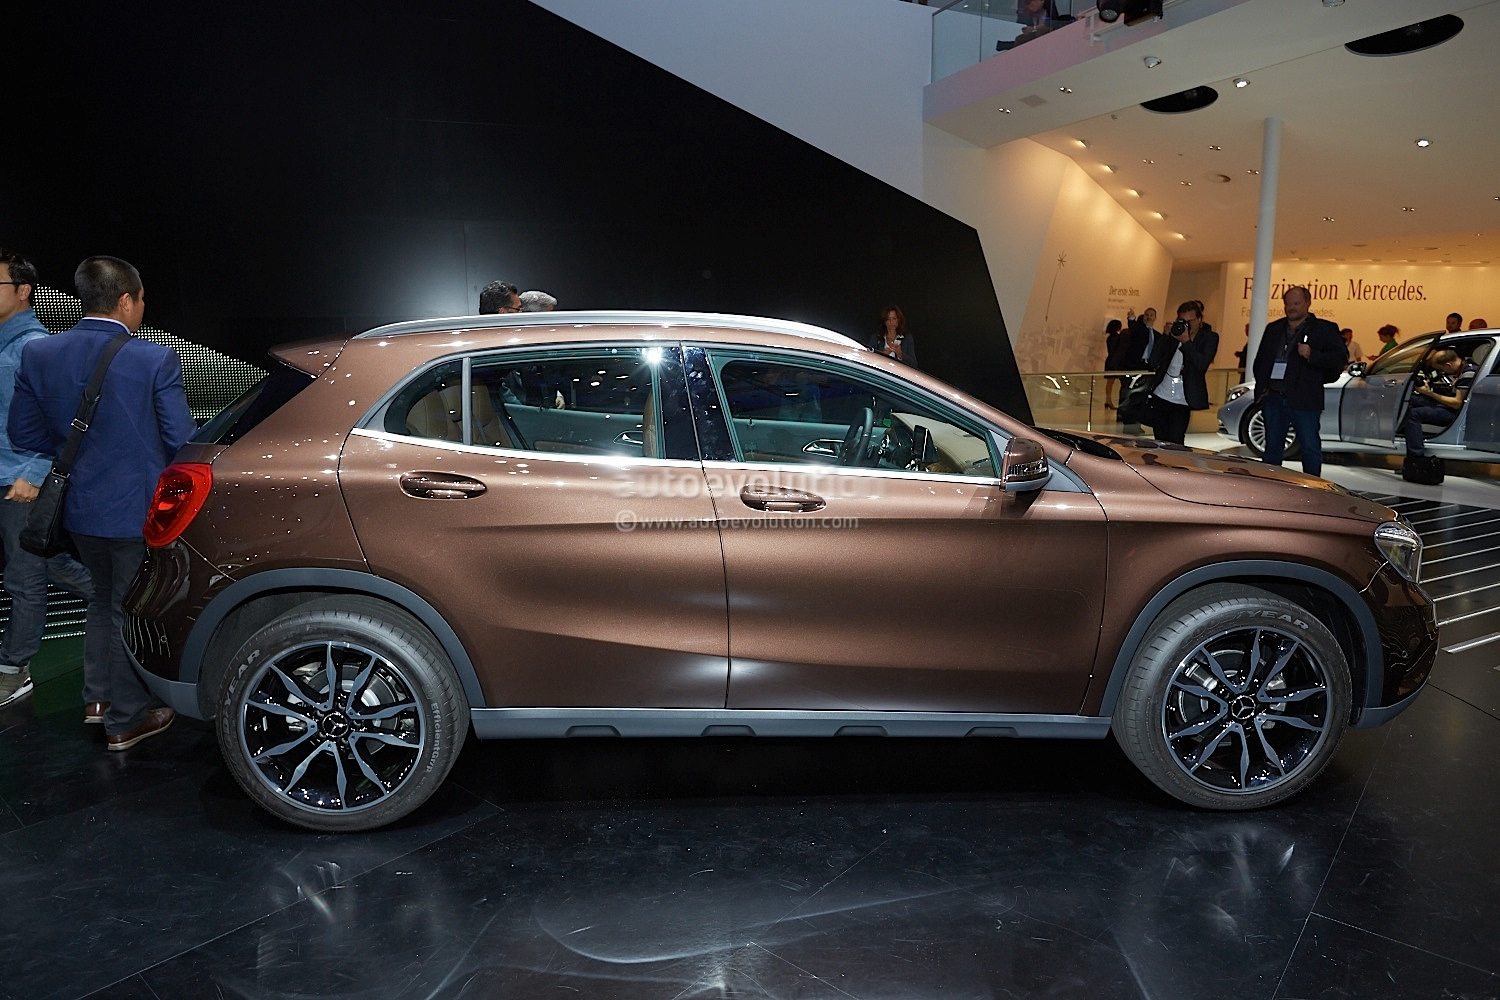 Mercedes G Class Suv >> Mercedes-Benz GLA Looks Even Better in Person [Live Photos ...